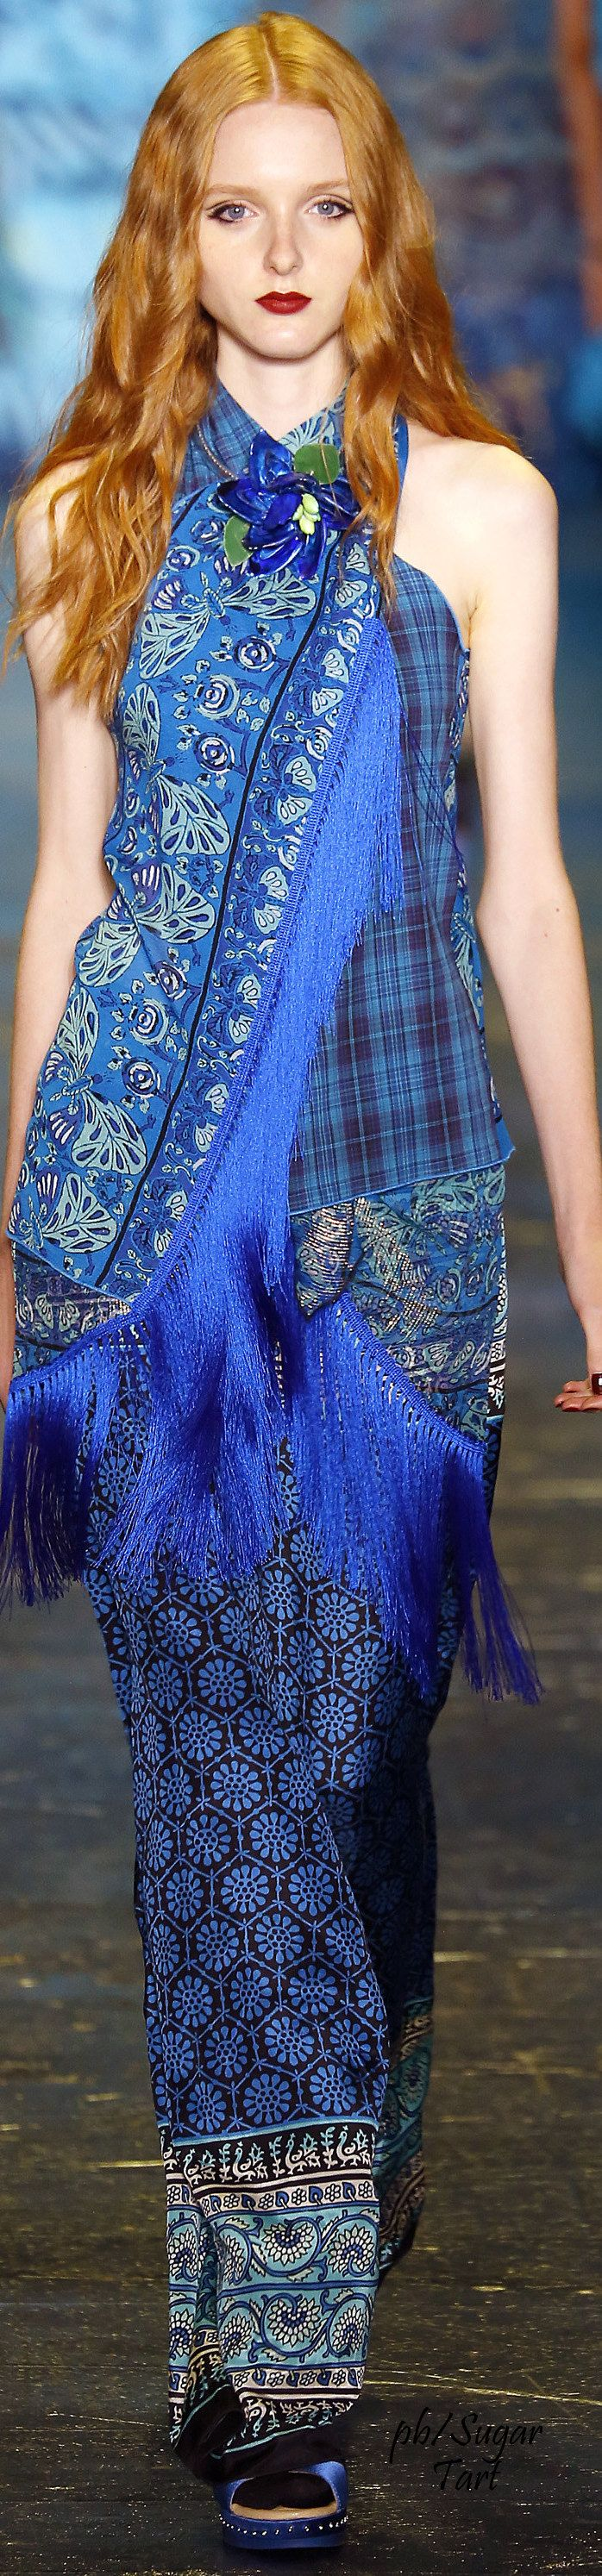 Anna Sui ~ Spring Blue Multi Print Maxi Dress 2016 RTW NYC Hair Salons www.jeffreysteinsalons.com